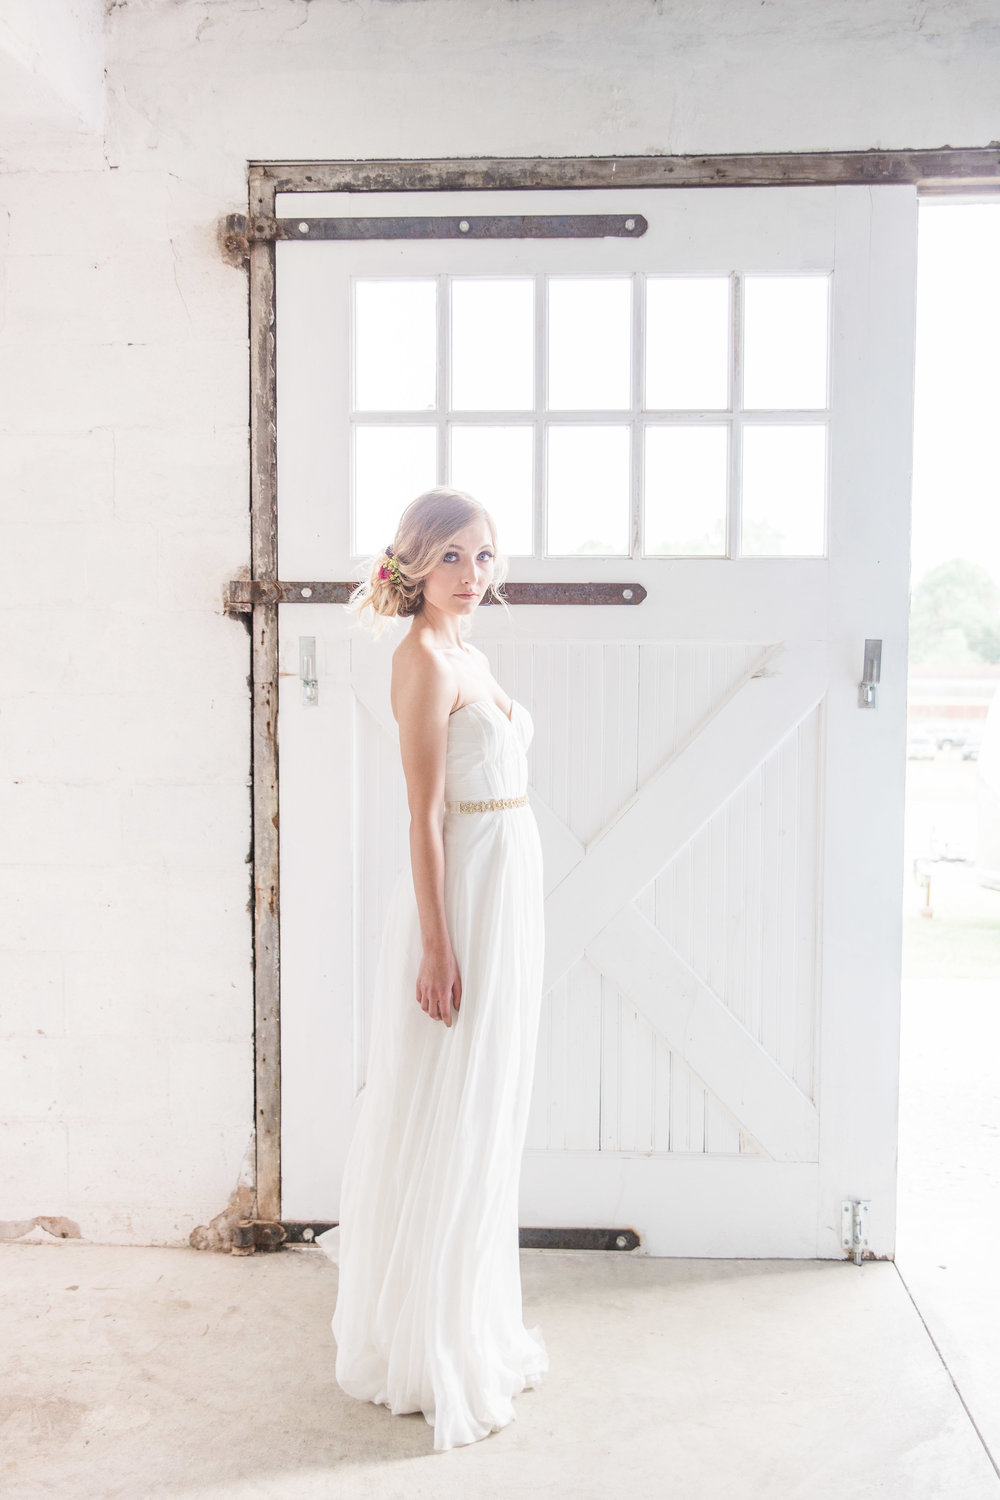 You can choose to create your own wedding collection by selecting only the services you would like for your wedding day. This way you don't have to feel pressured into products or services that don't fit your needs. First, you'll start out by selecting the Collection Starter. This includes two, day-of wedding photographers for the entire day of your wedding. No need to be concerned with adding time to your day. We arrive an hour before the bride steps into her gown and we stay for an hour after your guests hit the dancefloor. We will stay longer in the evening if you have a grand exit planned.Once you've secured your wedding photography you can add on different sessions to enhance your experience with Lea Marie Photography; Everything from an Engagement Session to a Bridal Boudoir.After you choose your sessions, you can continue on to add on one of our beautifully designed, linen wedding albums and even add on a few parent albums as a special gift for your parents to showcase in their home. I also offer guest books for your wedding reception designed using your engagement photos throughout, creating a personalized touch to greet your guests. Choose as many options as you like to make your custom collection work best for you and your family. Take comfort in knowing that I take pride in each and every detail of my work, and my wish is for you to treasure these memories for generations. -